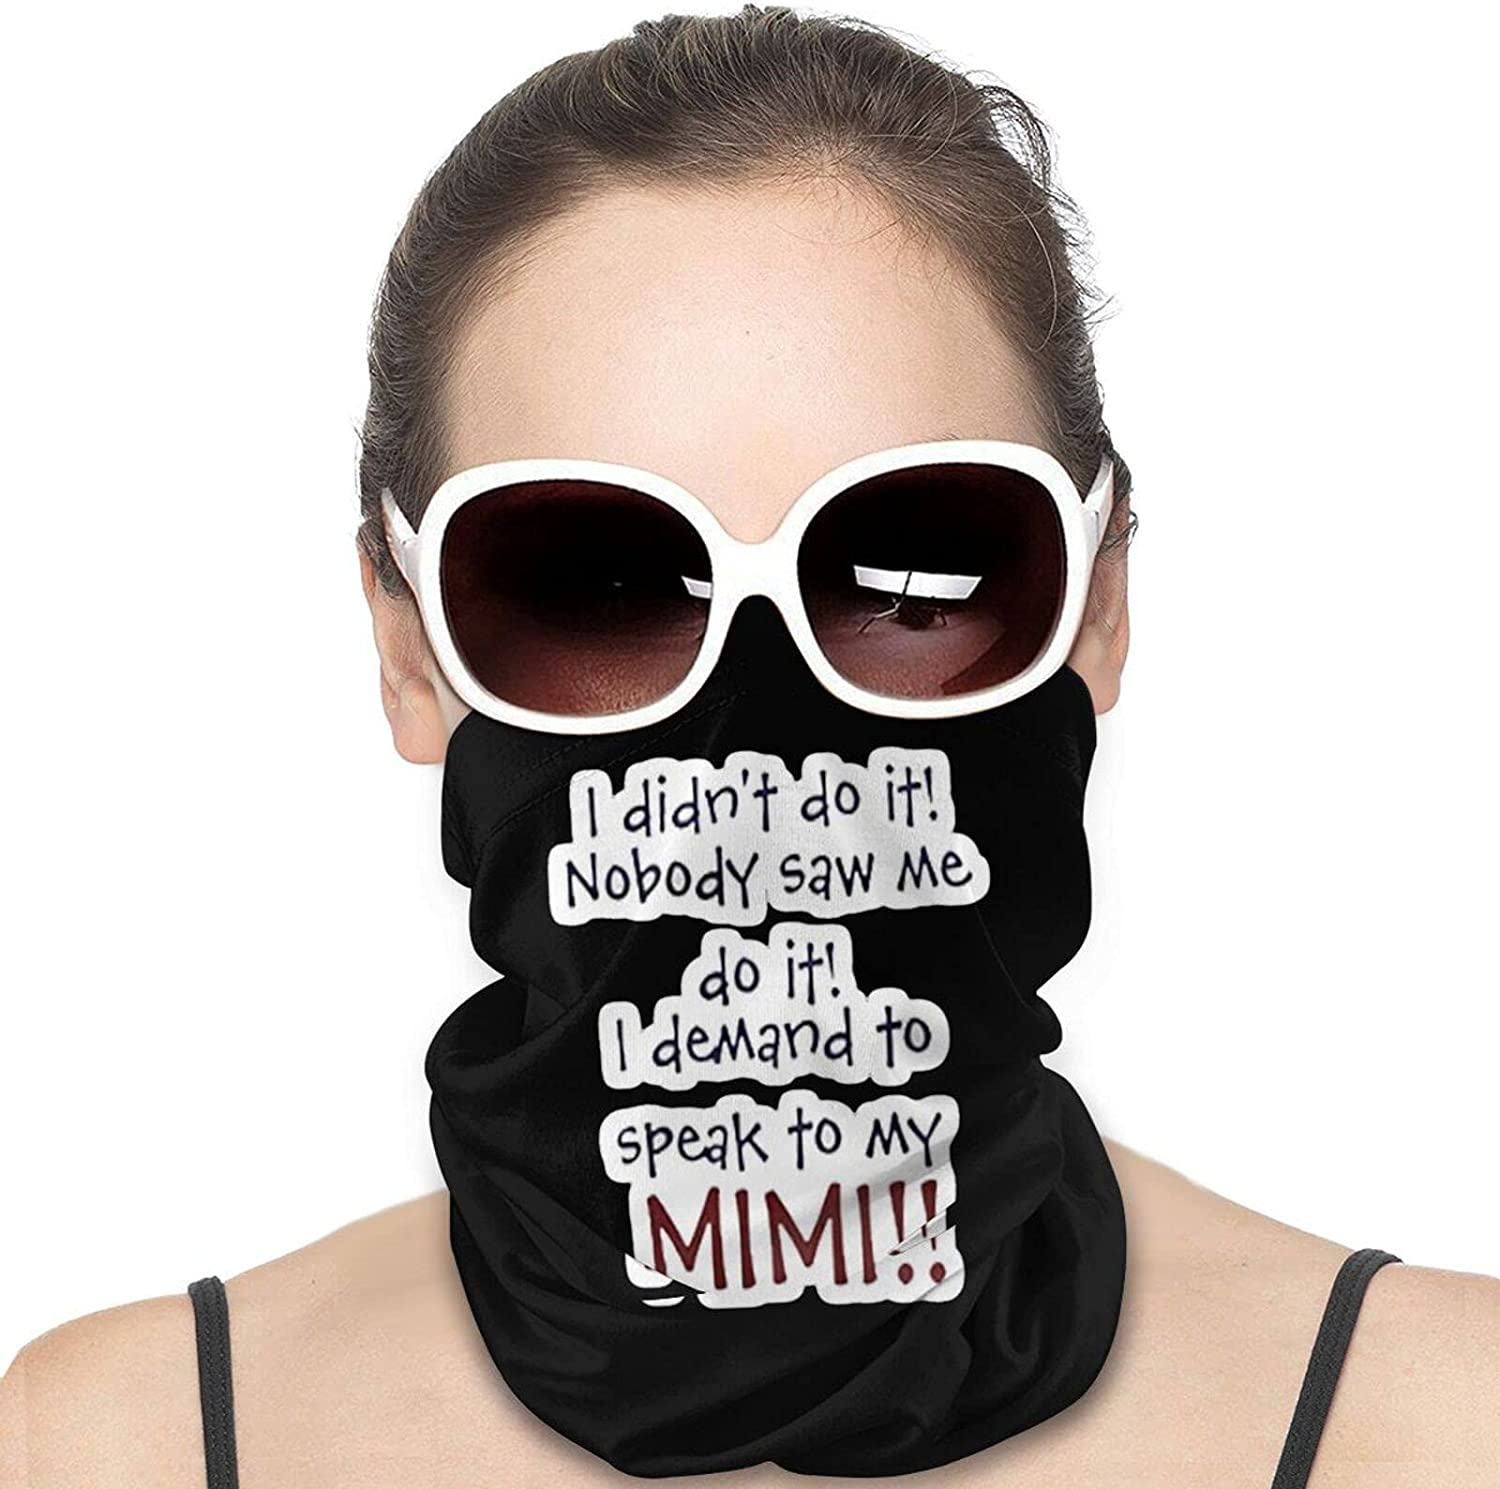 I Demand to Speak to My Mimi Round Neck Gaiter Bandnas Face Cover Uv Protection Prevent bask in Ice Scarf Headbands Perfect for Motorcycle Cycling Running Festival Raves Outdoors